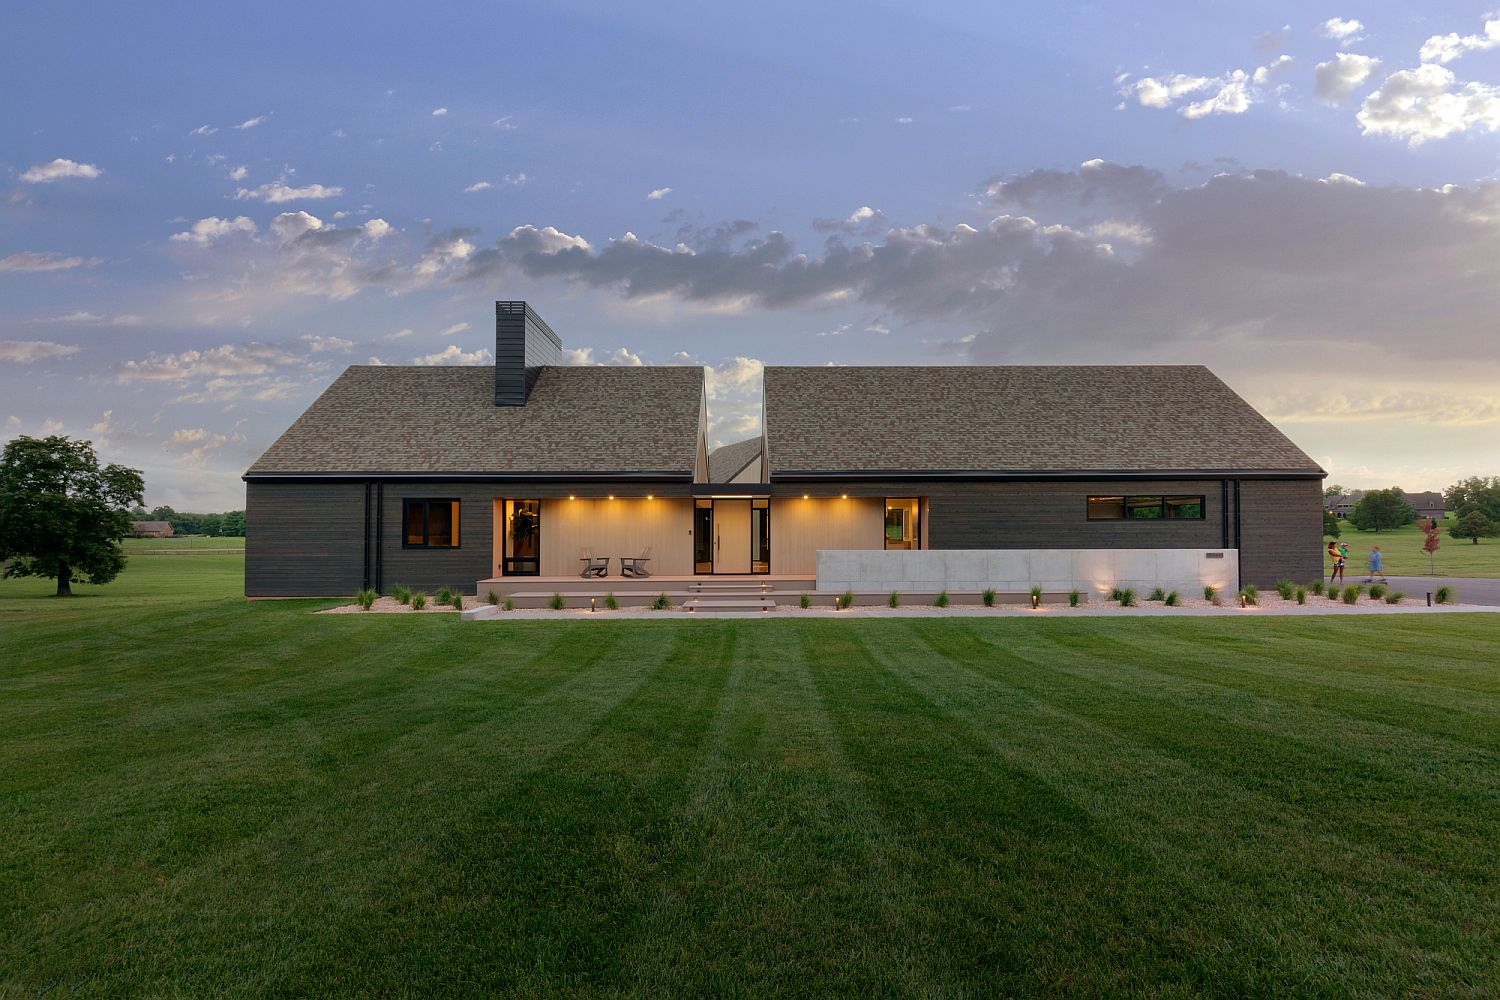 Different-shades-of-cedar-wood-shape-the-exterior-of-the-house